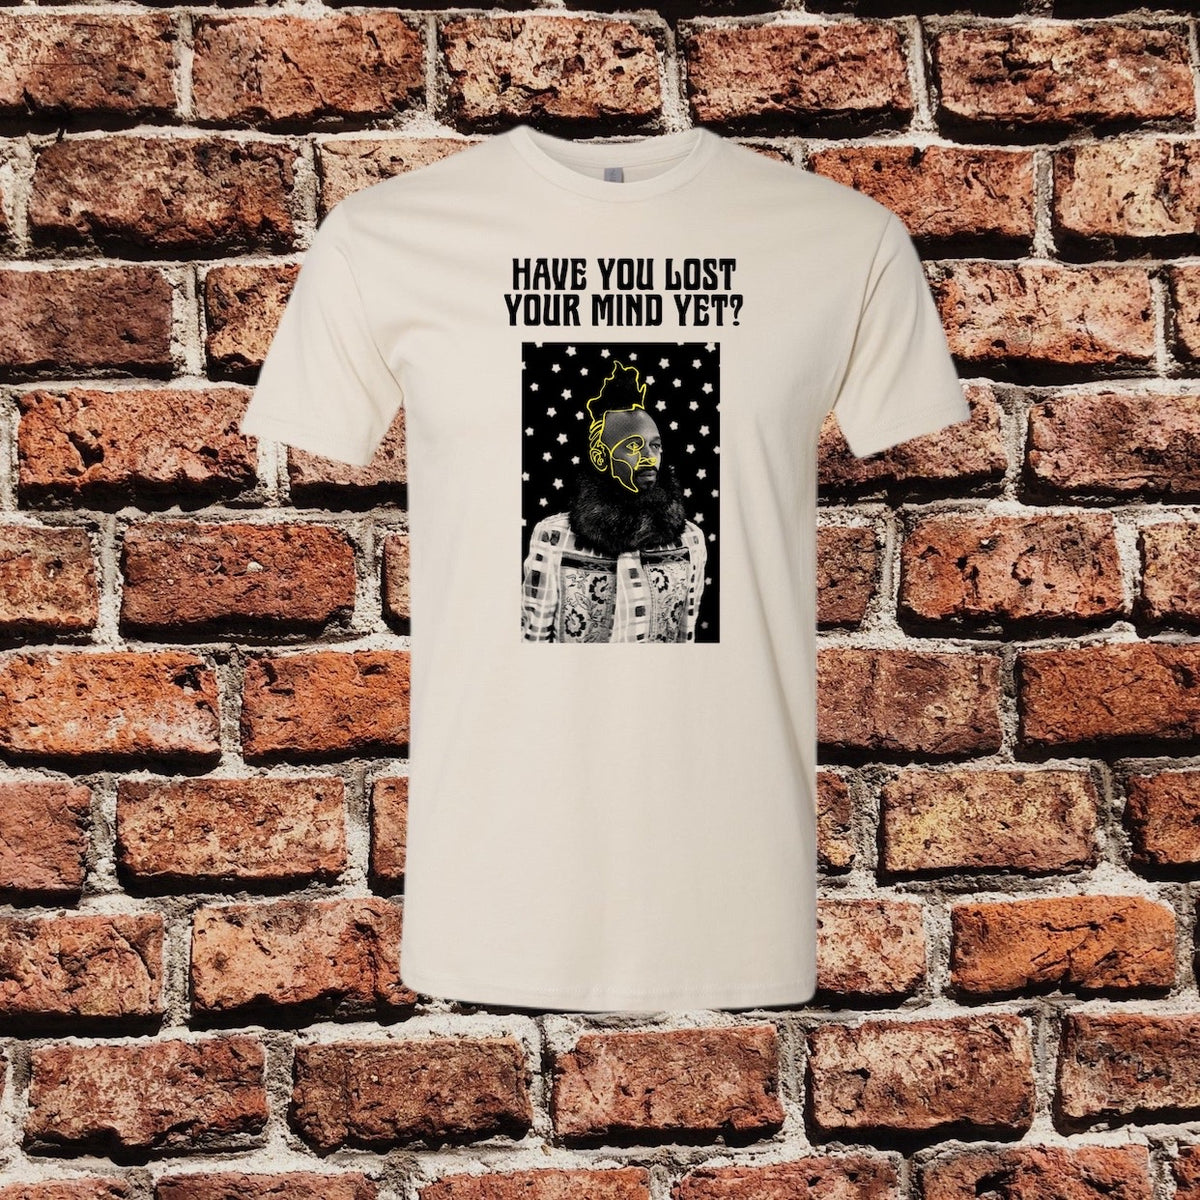 NEW-Unisex Have You Lost Your Mind Yet? Tee